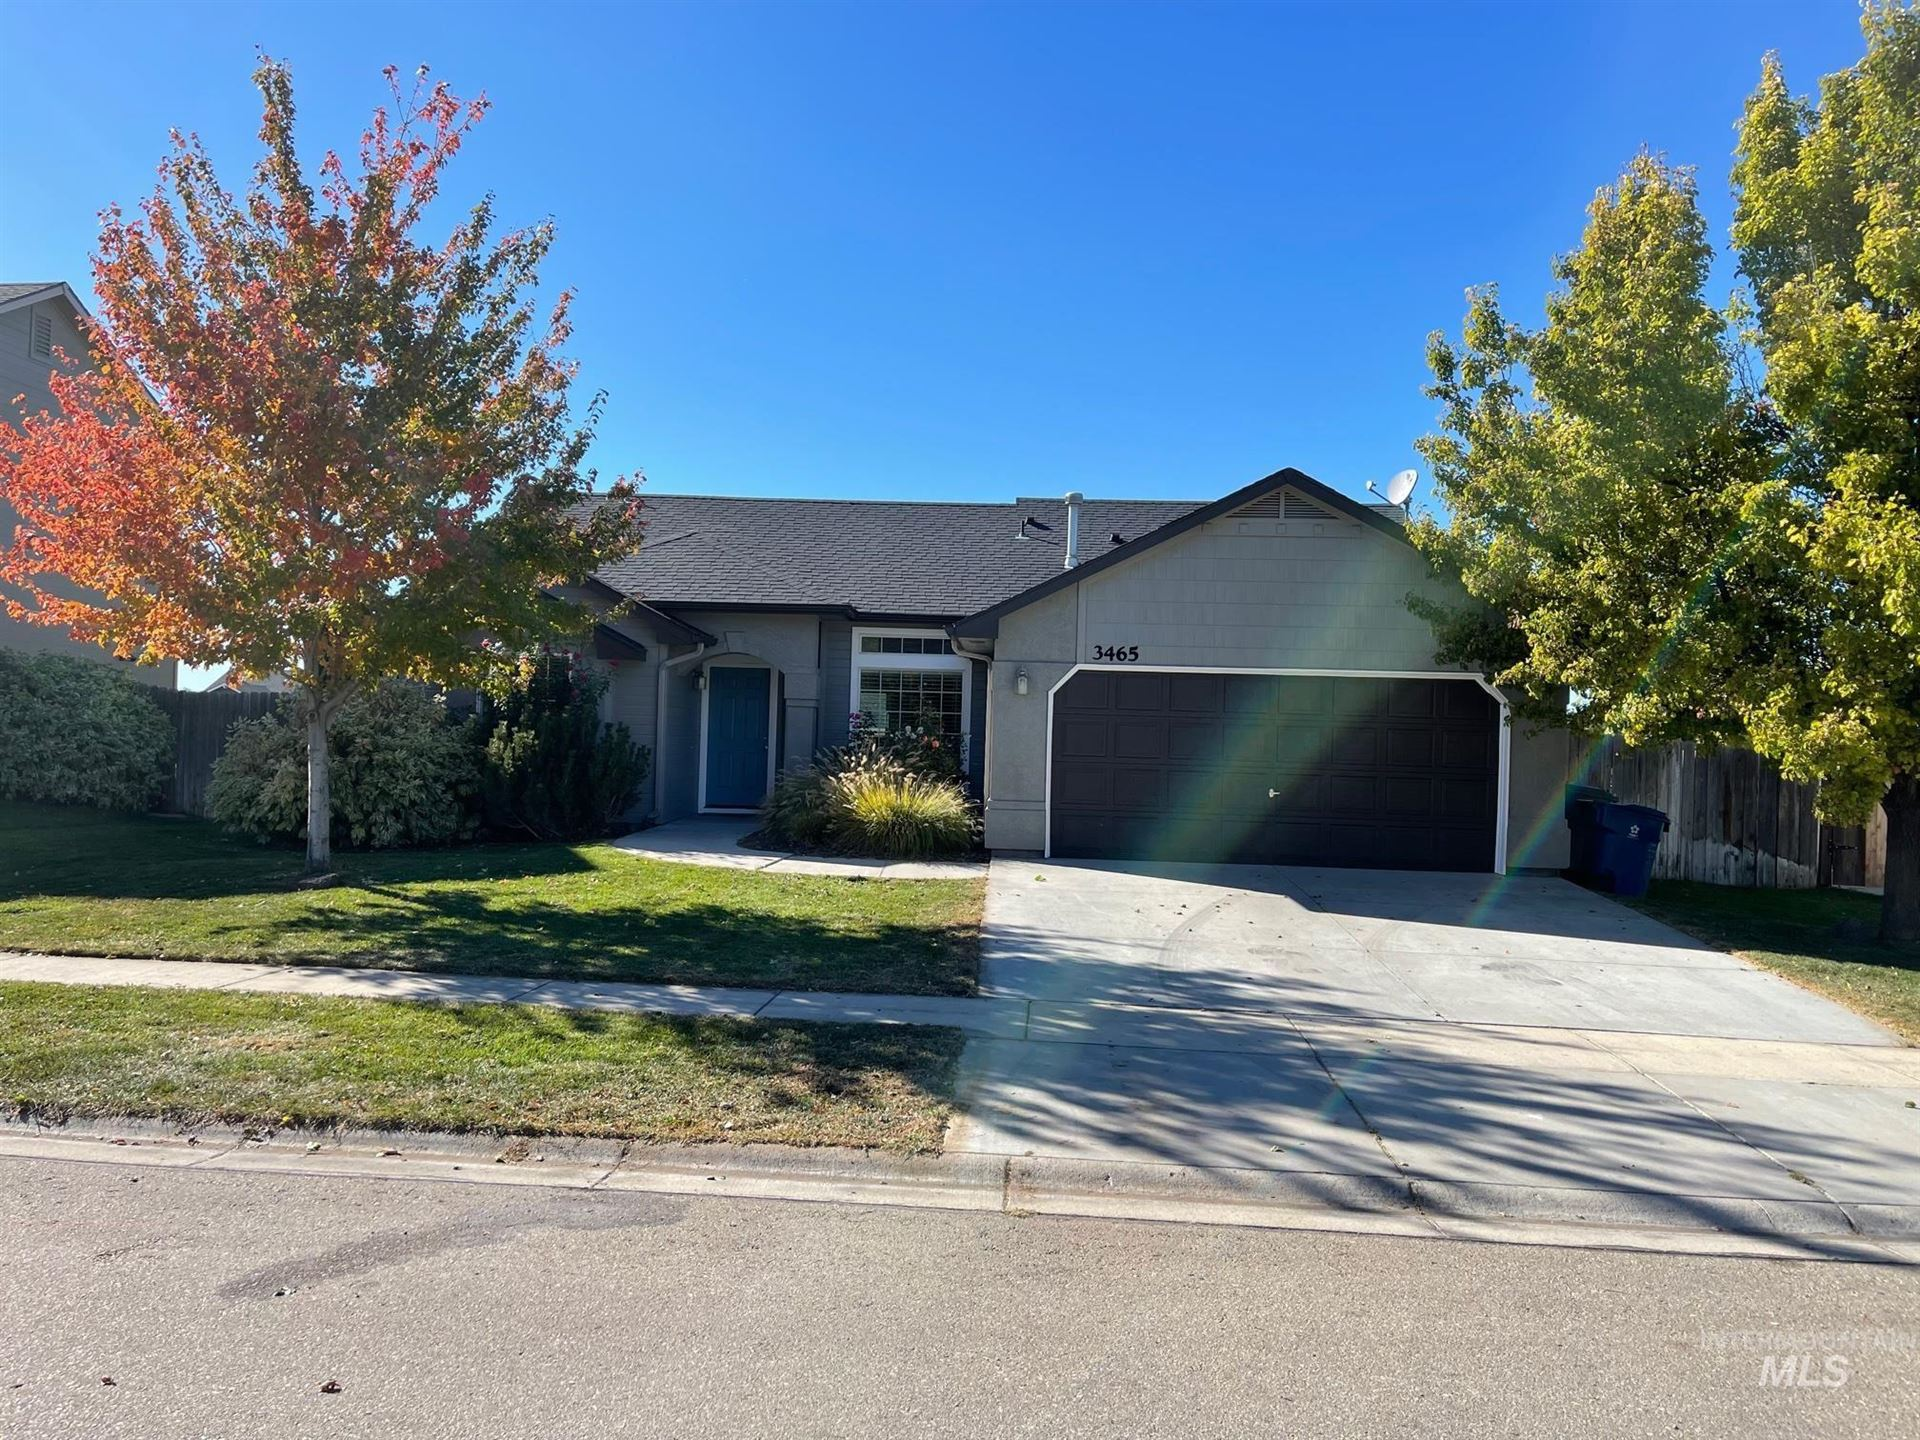 Photo of 3465 Payette River, Nampa, ID 83686 (MLS # 98822592)